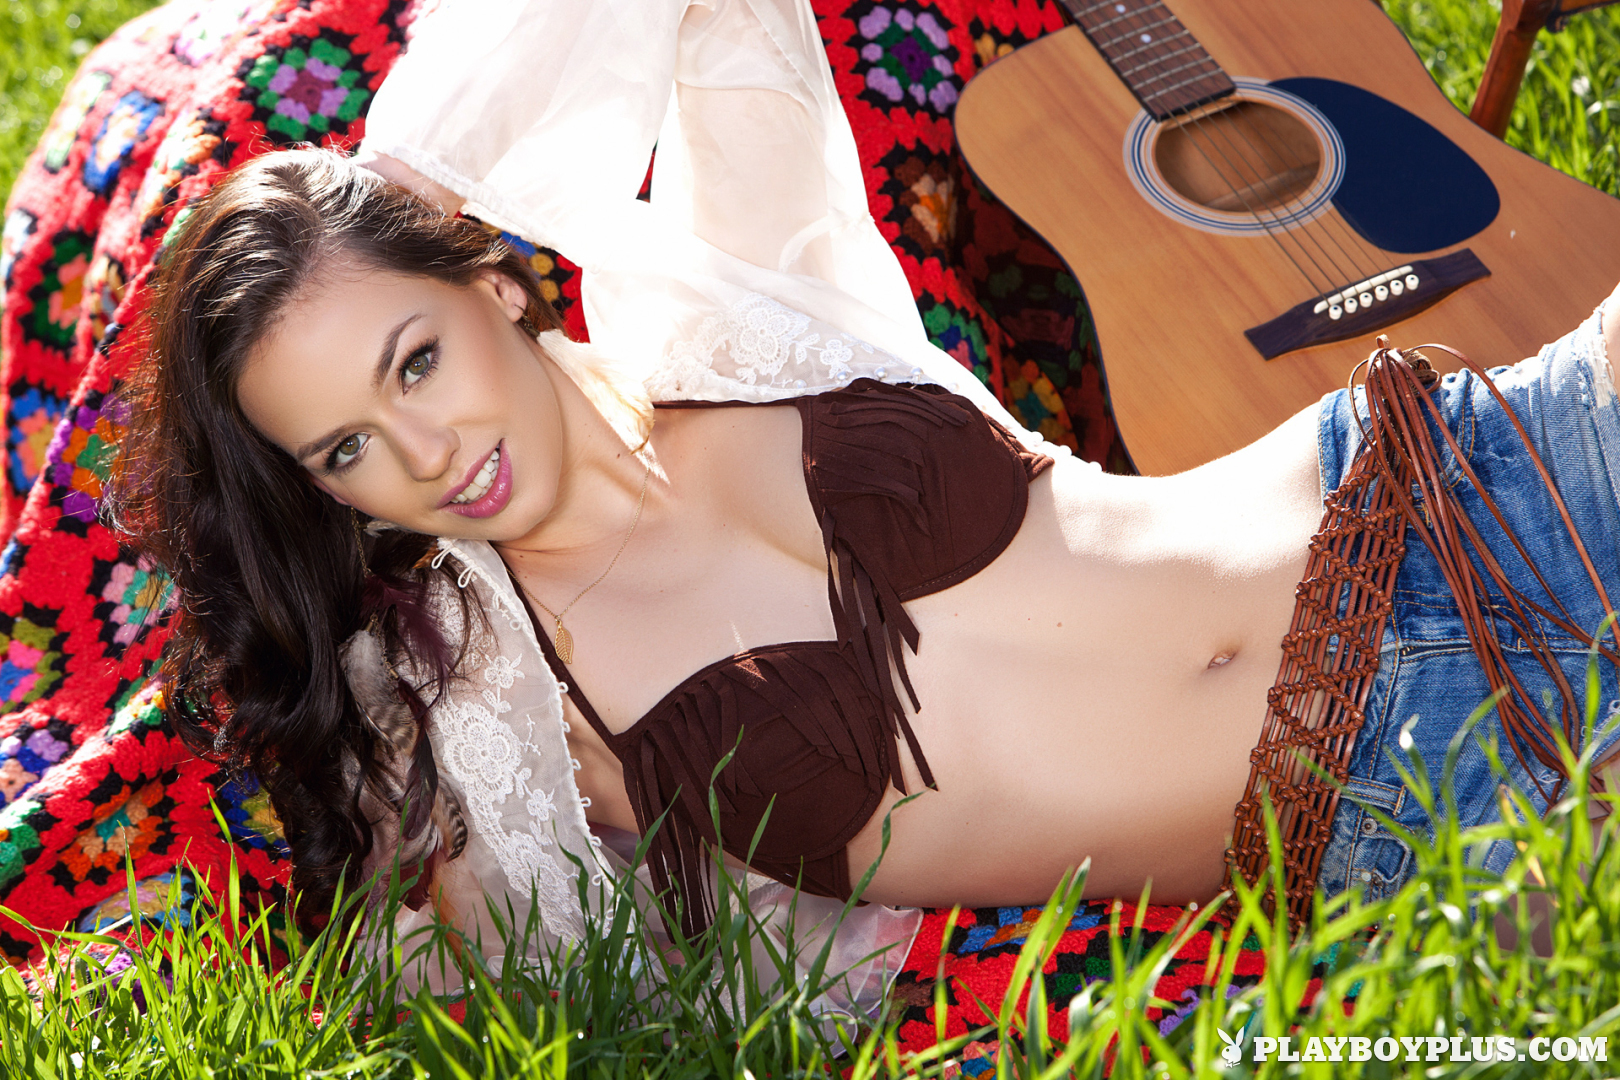 Playboy Cybergirl Madi Meadows Nude with a guitar in a field